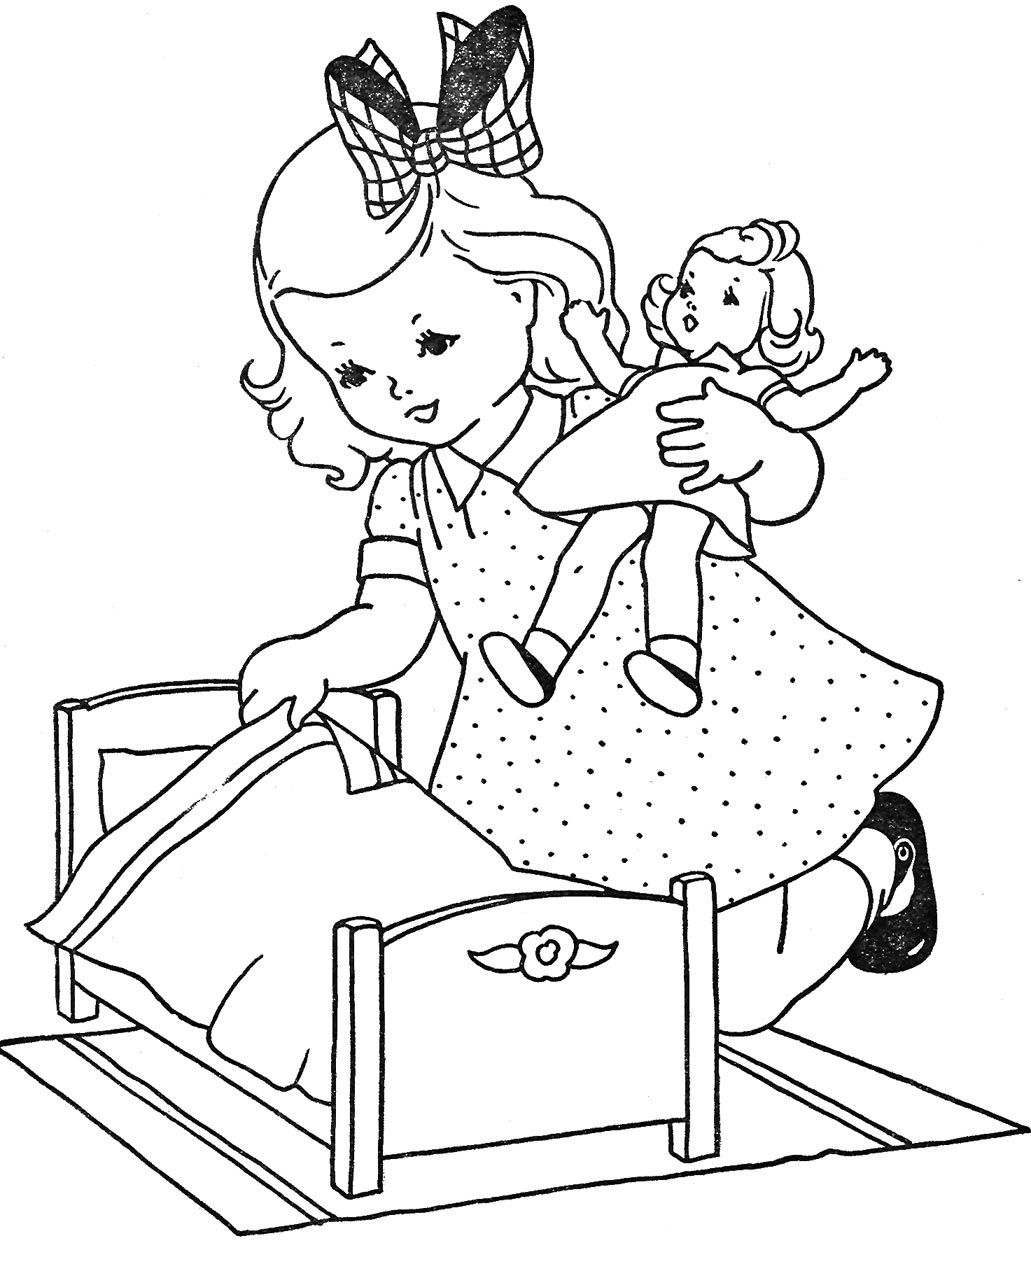 coloring printables toys coloring pages best coloring pages for kids coloring printables